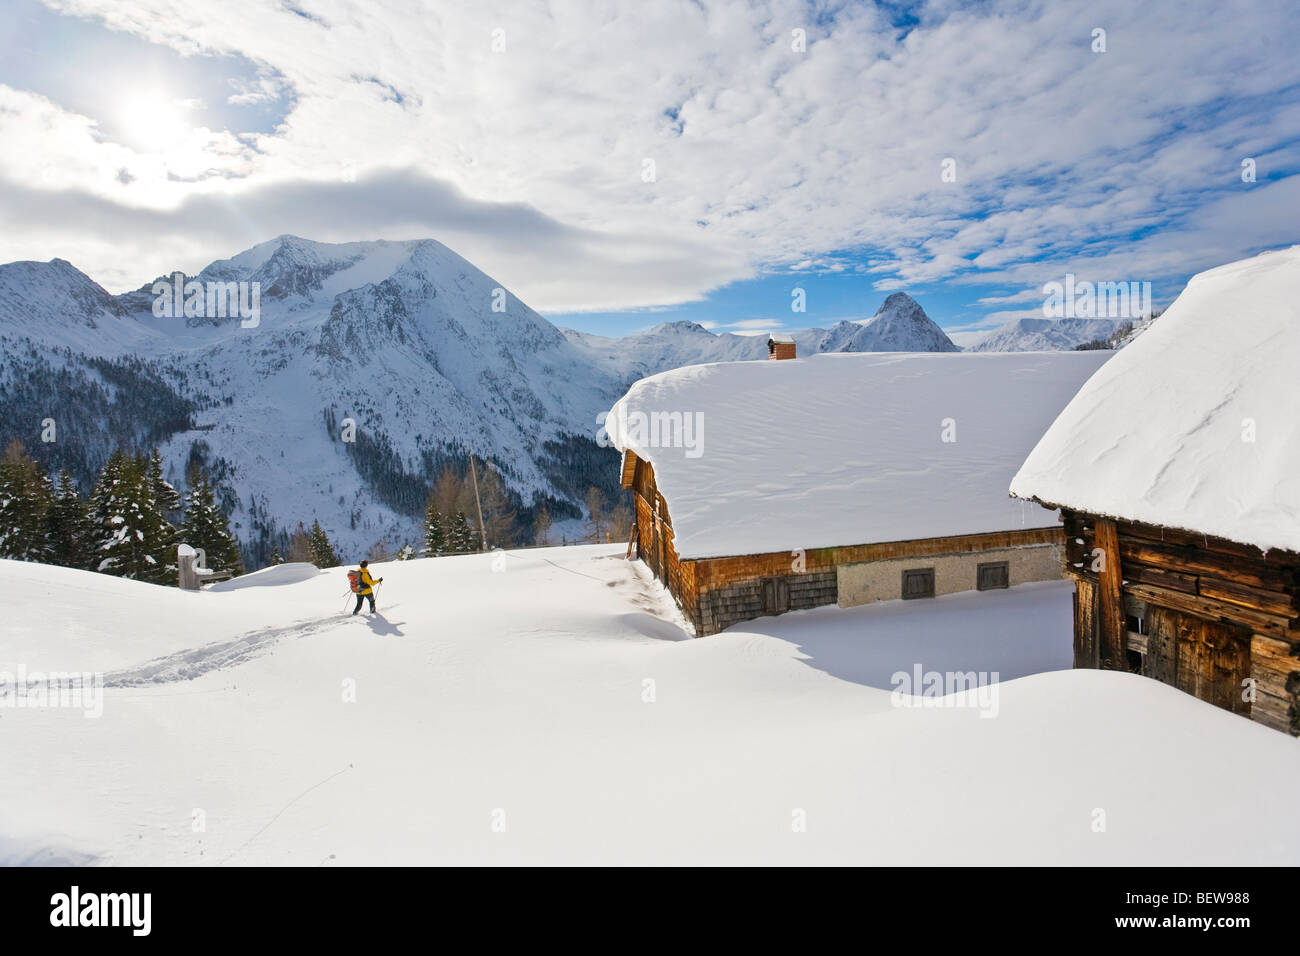 Woman with skis on a snowy mountain pasture with timber houses, Zederhaus, Salzburg, Austria - Stock Image